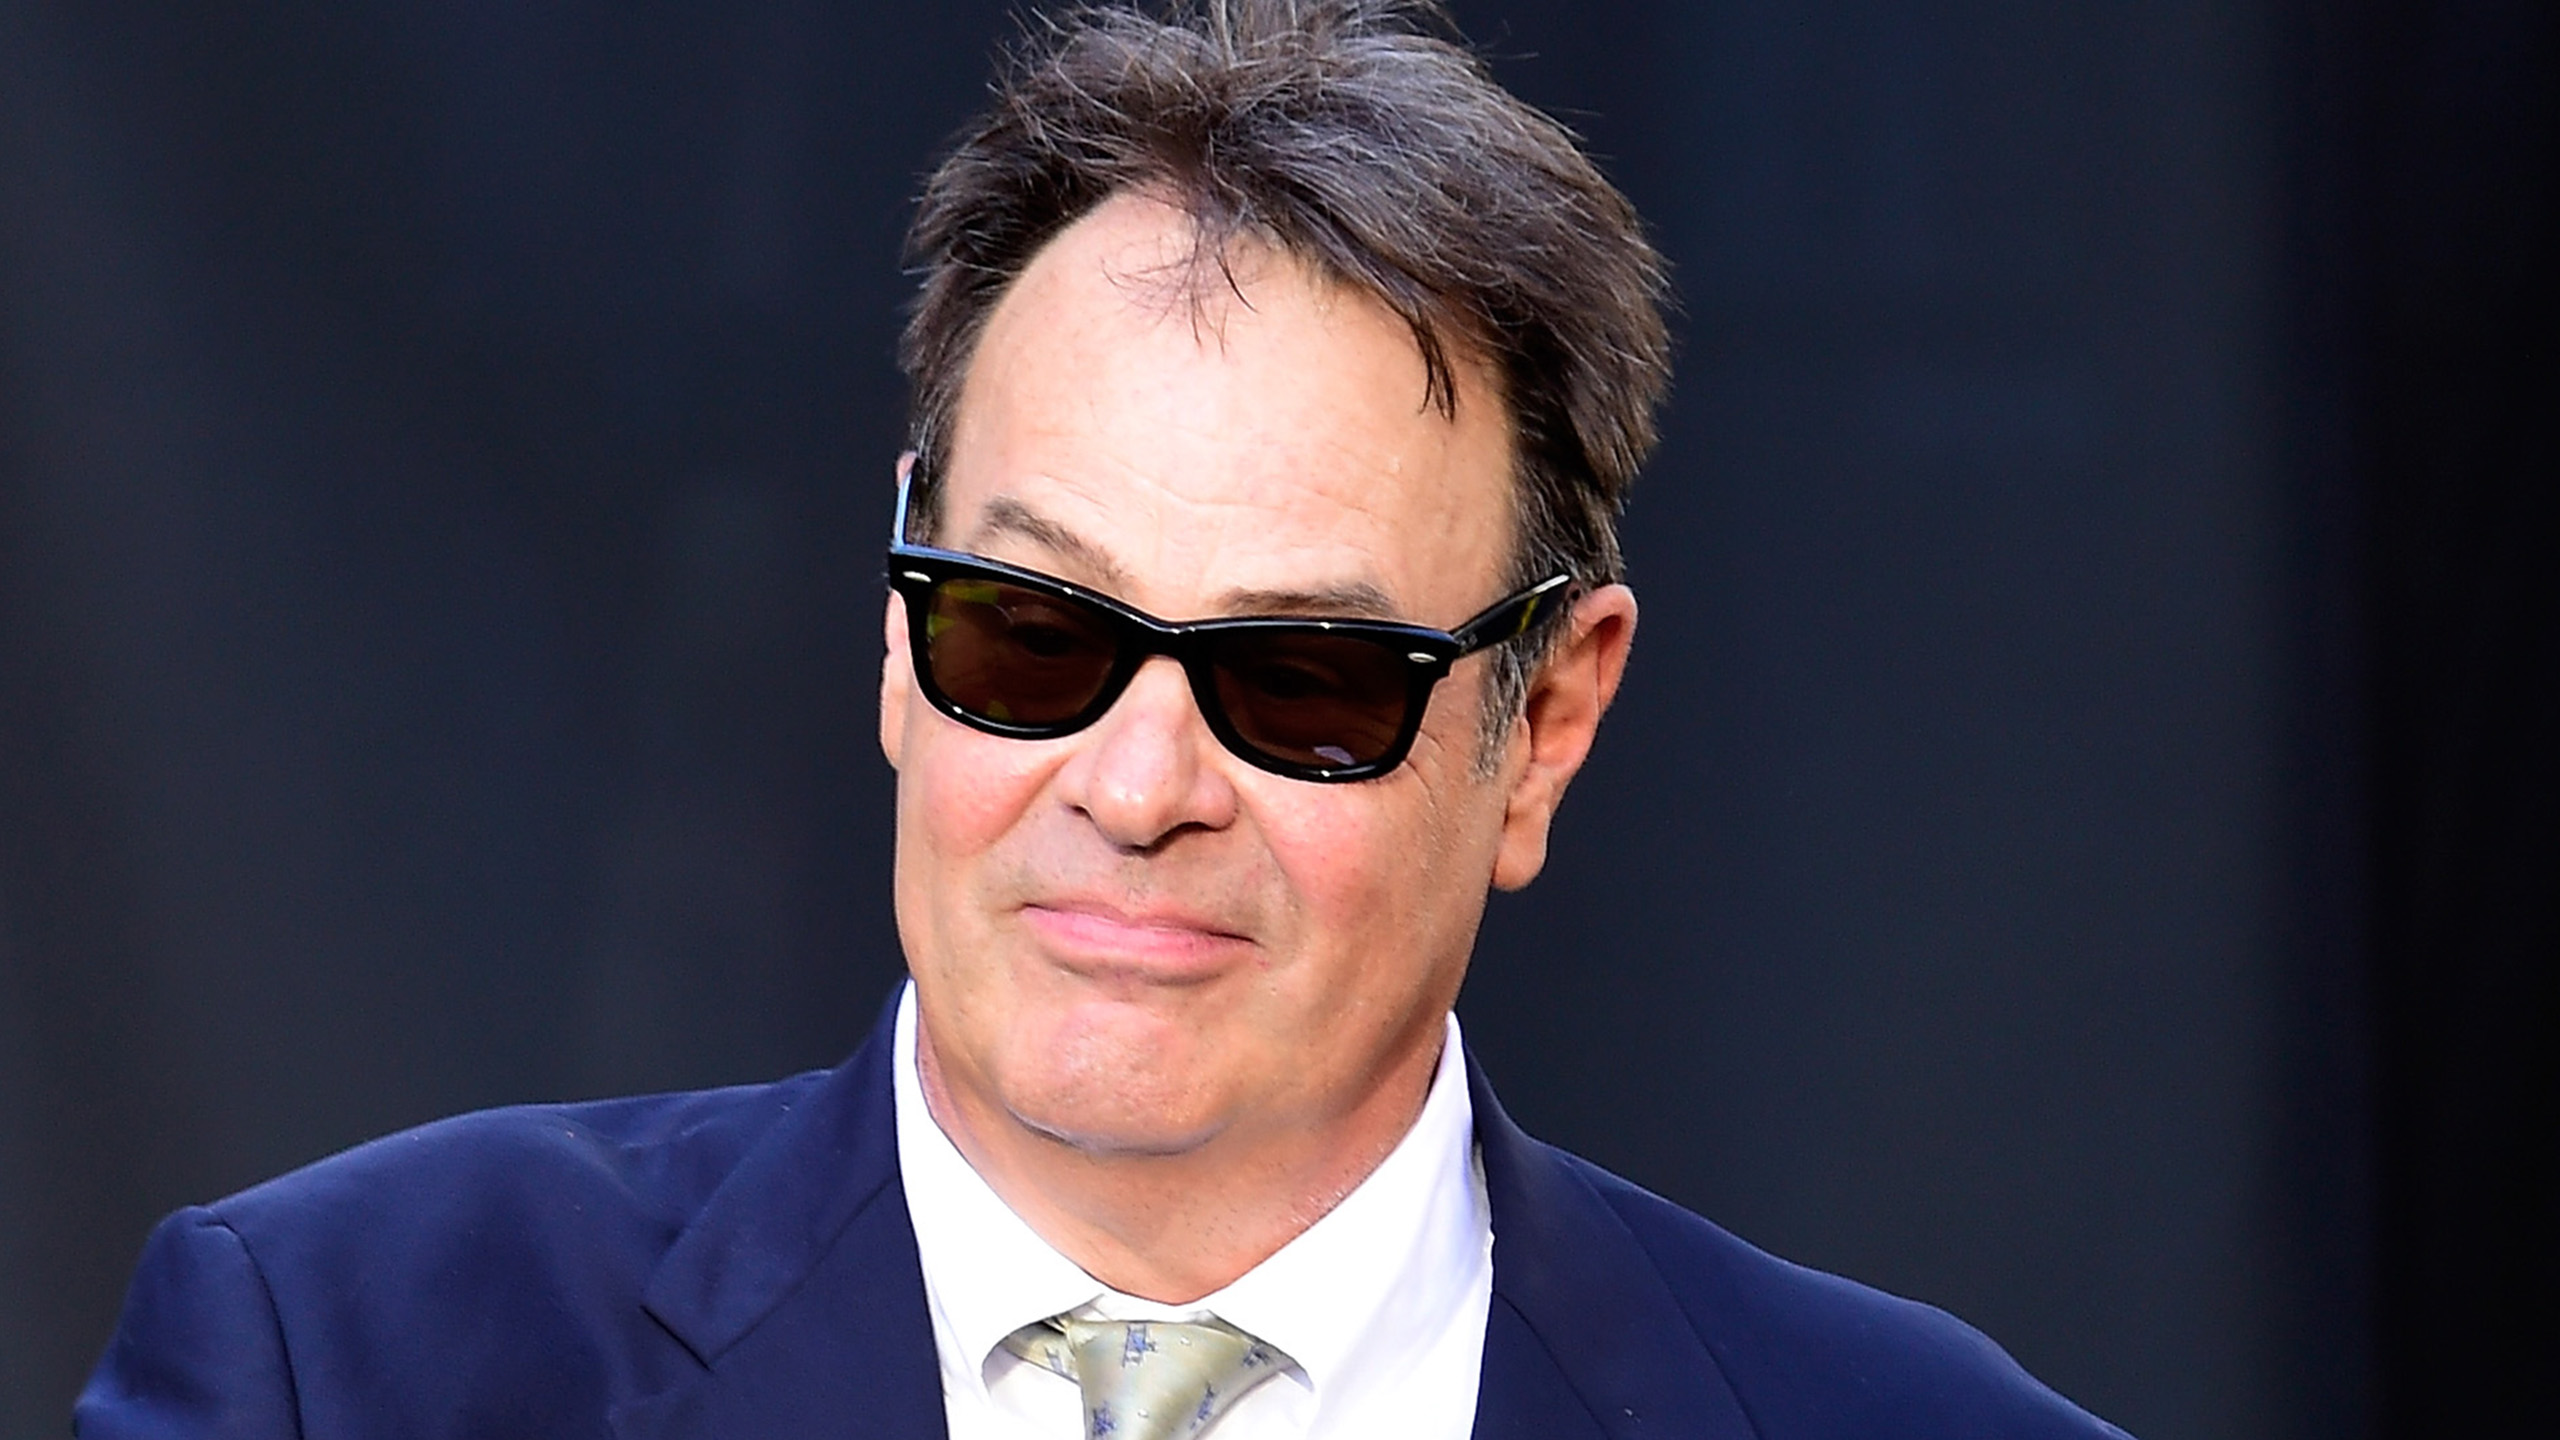 Why Dan Aykroyd?s Wine Cellar Is Empty photo